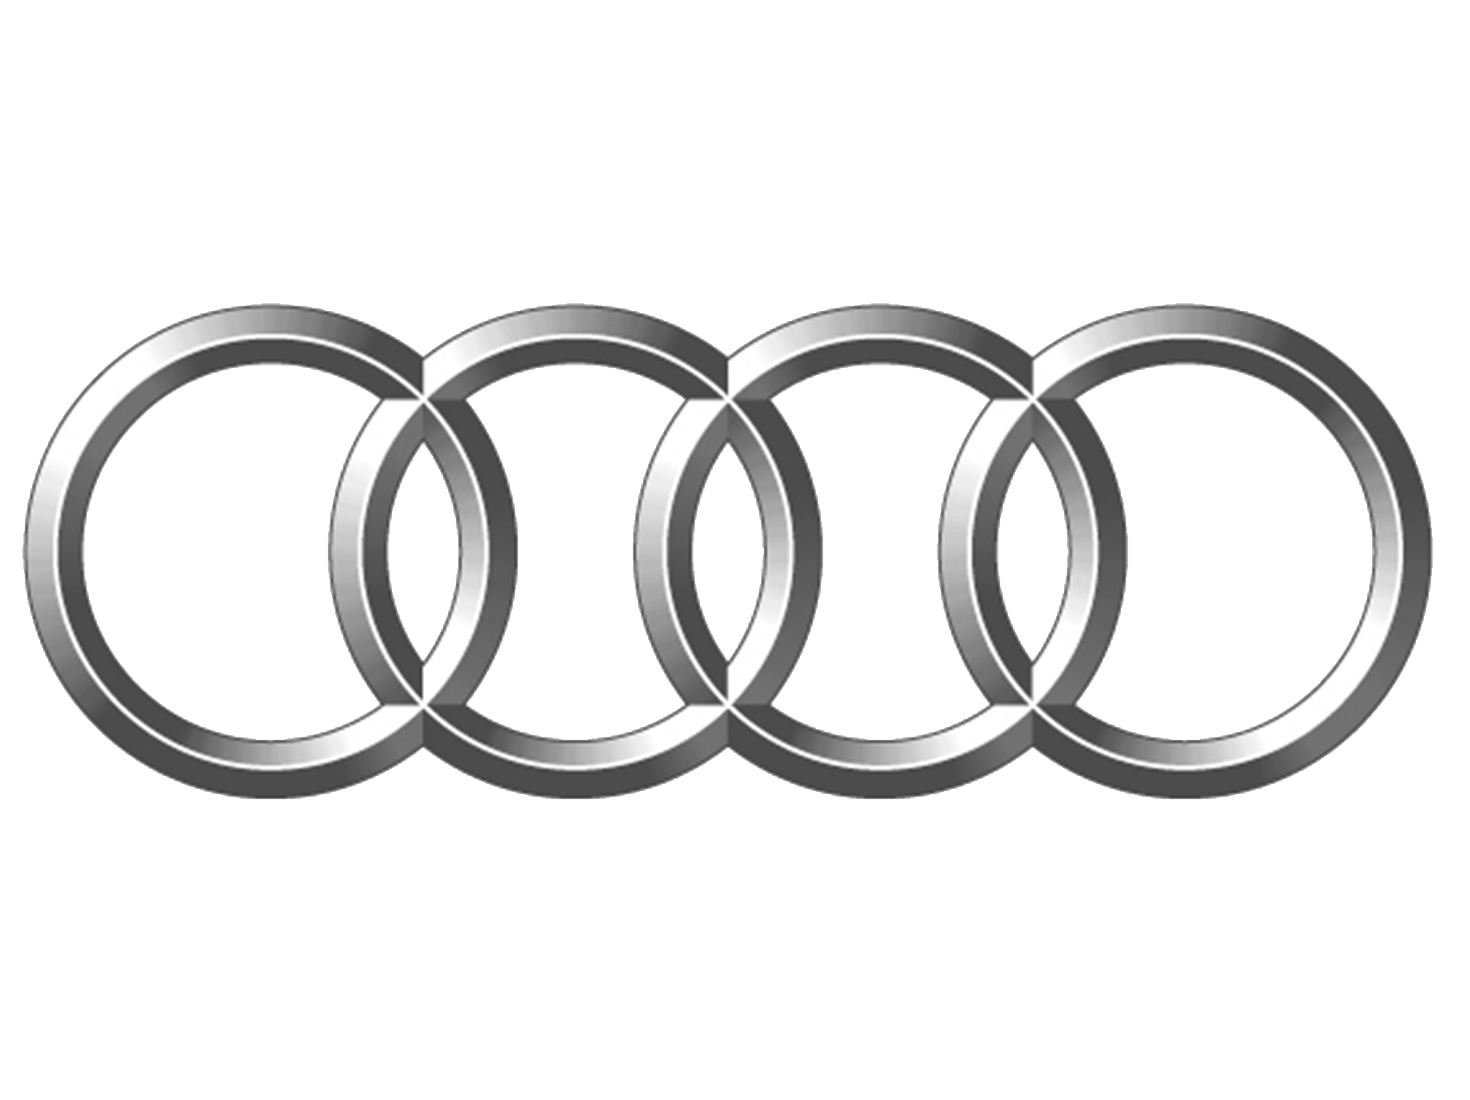 Audi Logo Transparent Png Stickpng